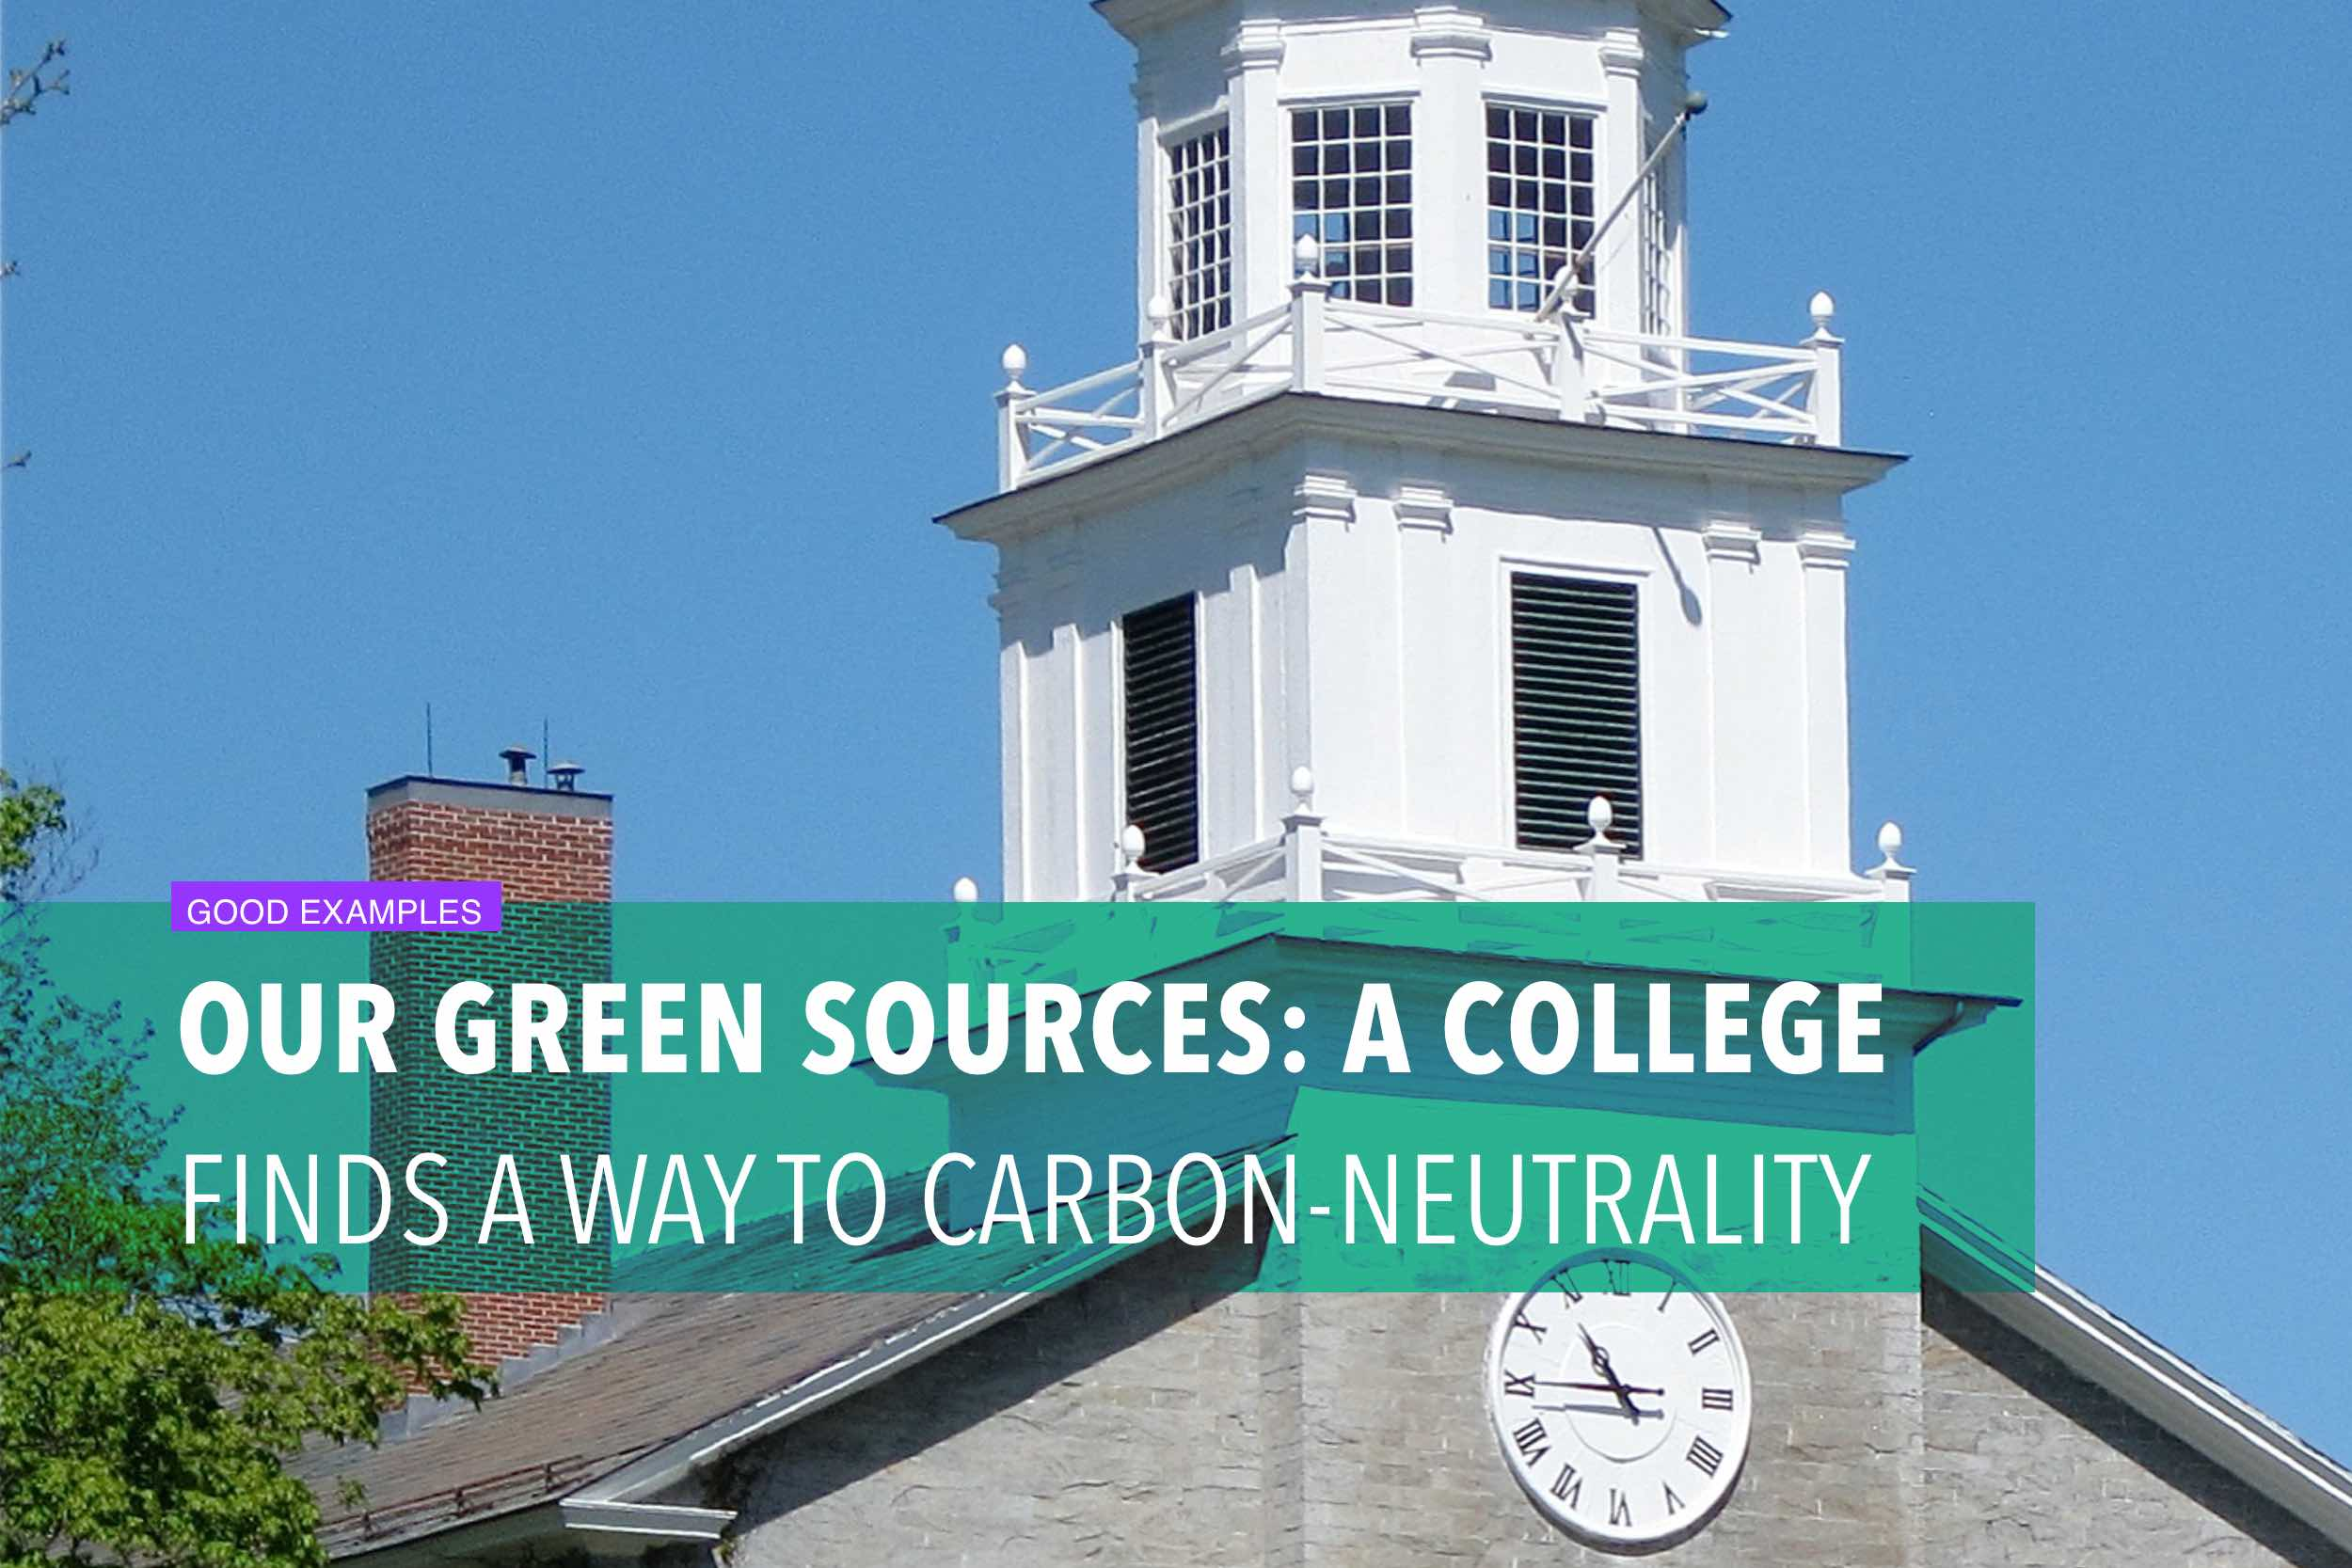 Our green sources: a college finds a way to carbon-neutrality